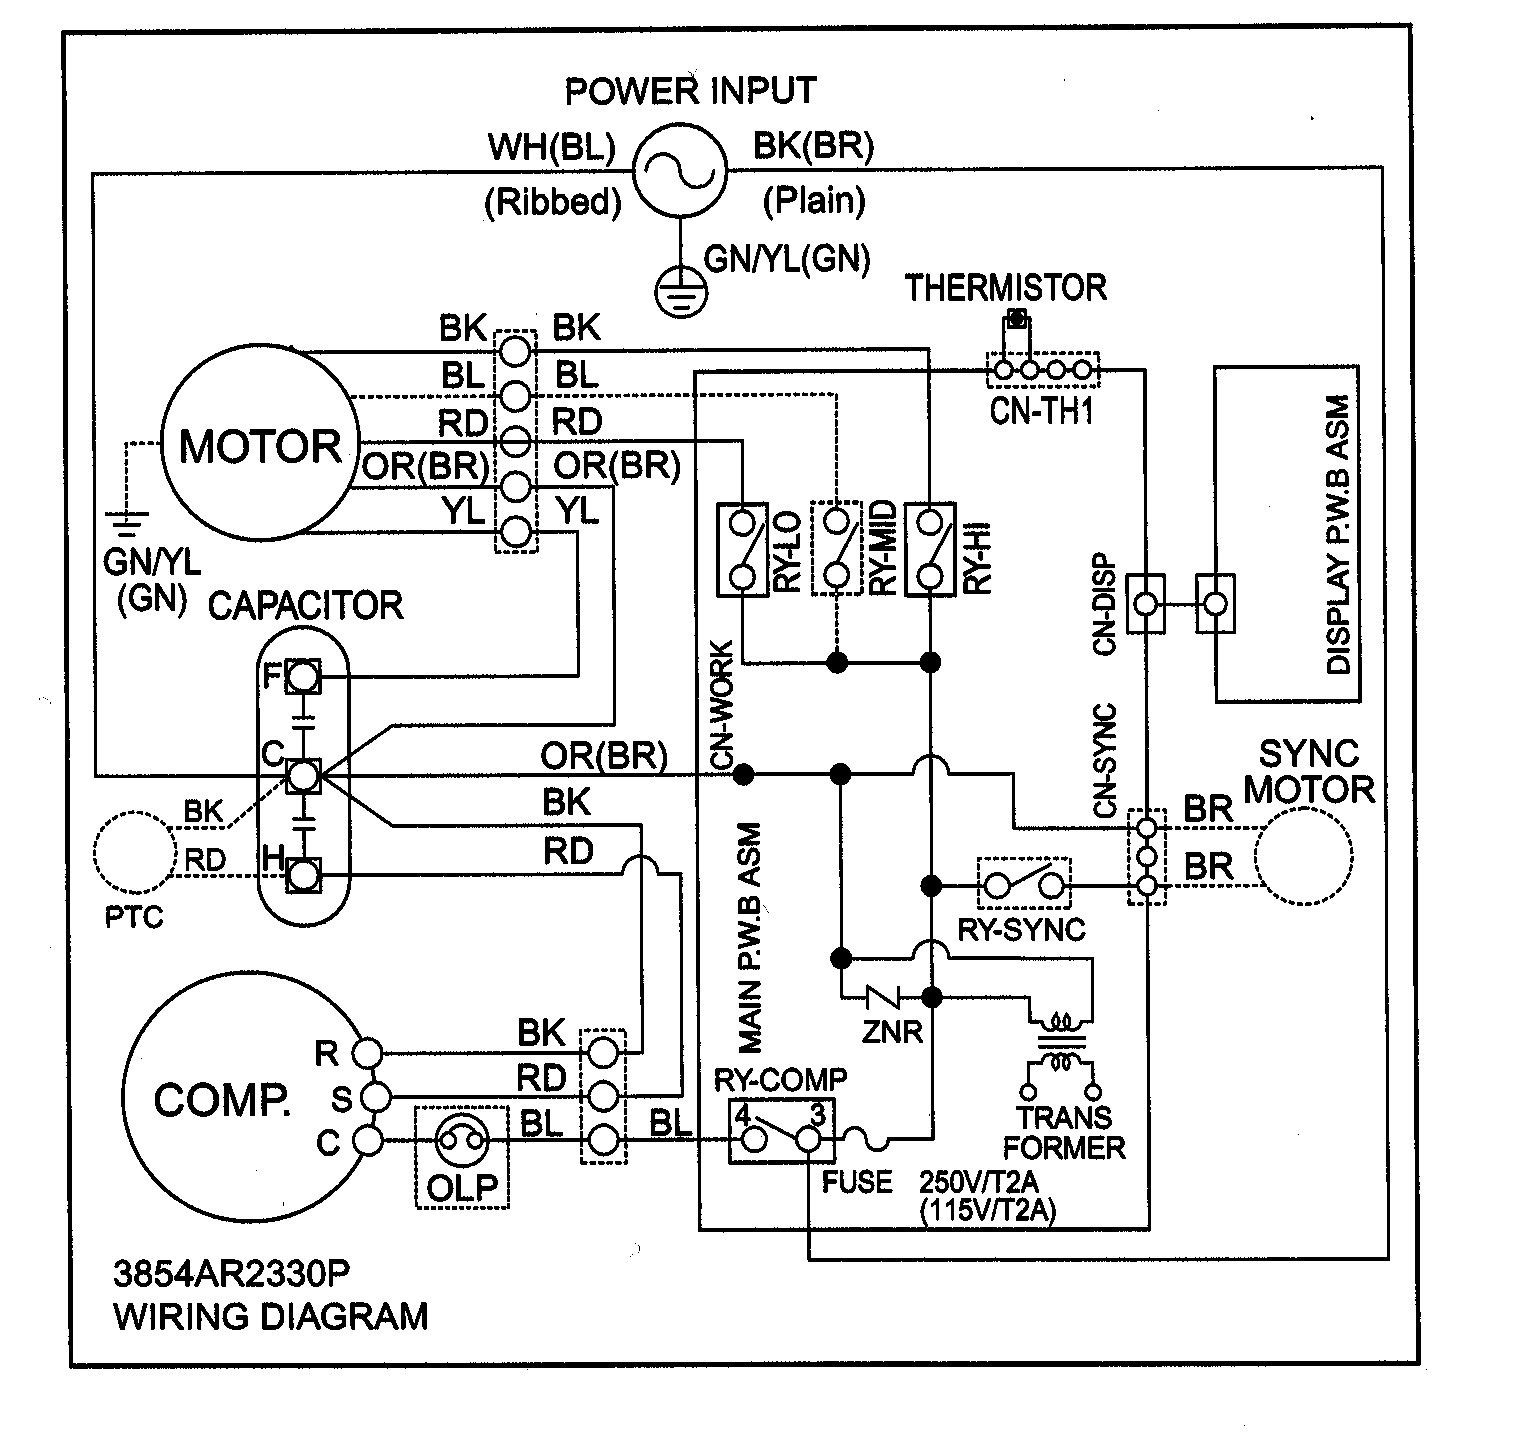 Basic Window Ac Wiring Diagram For Your Needs